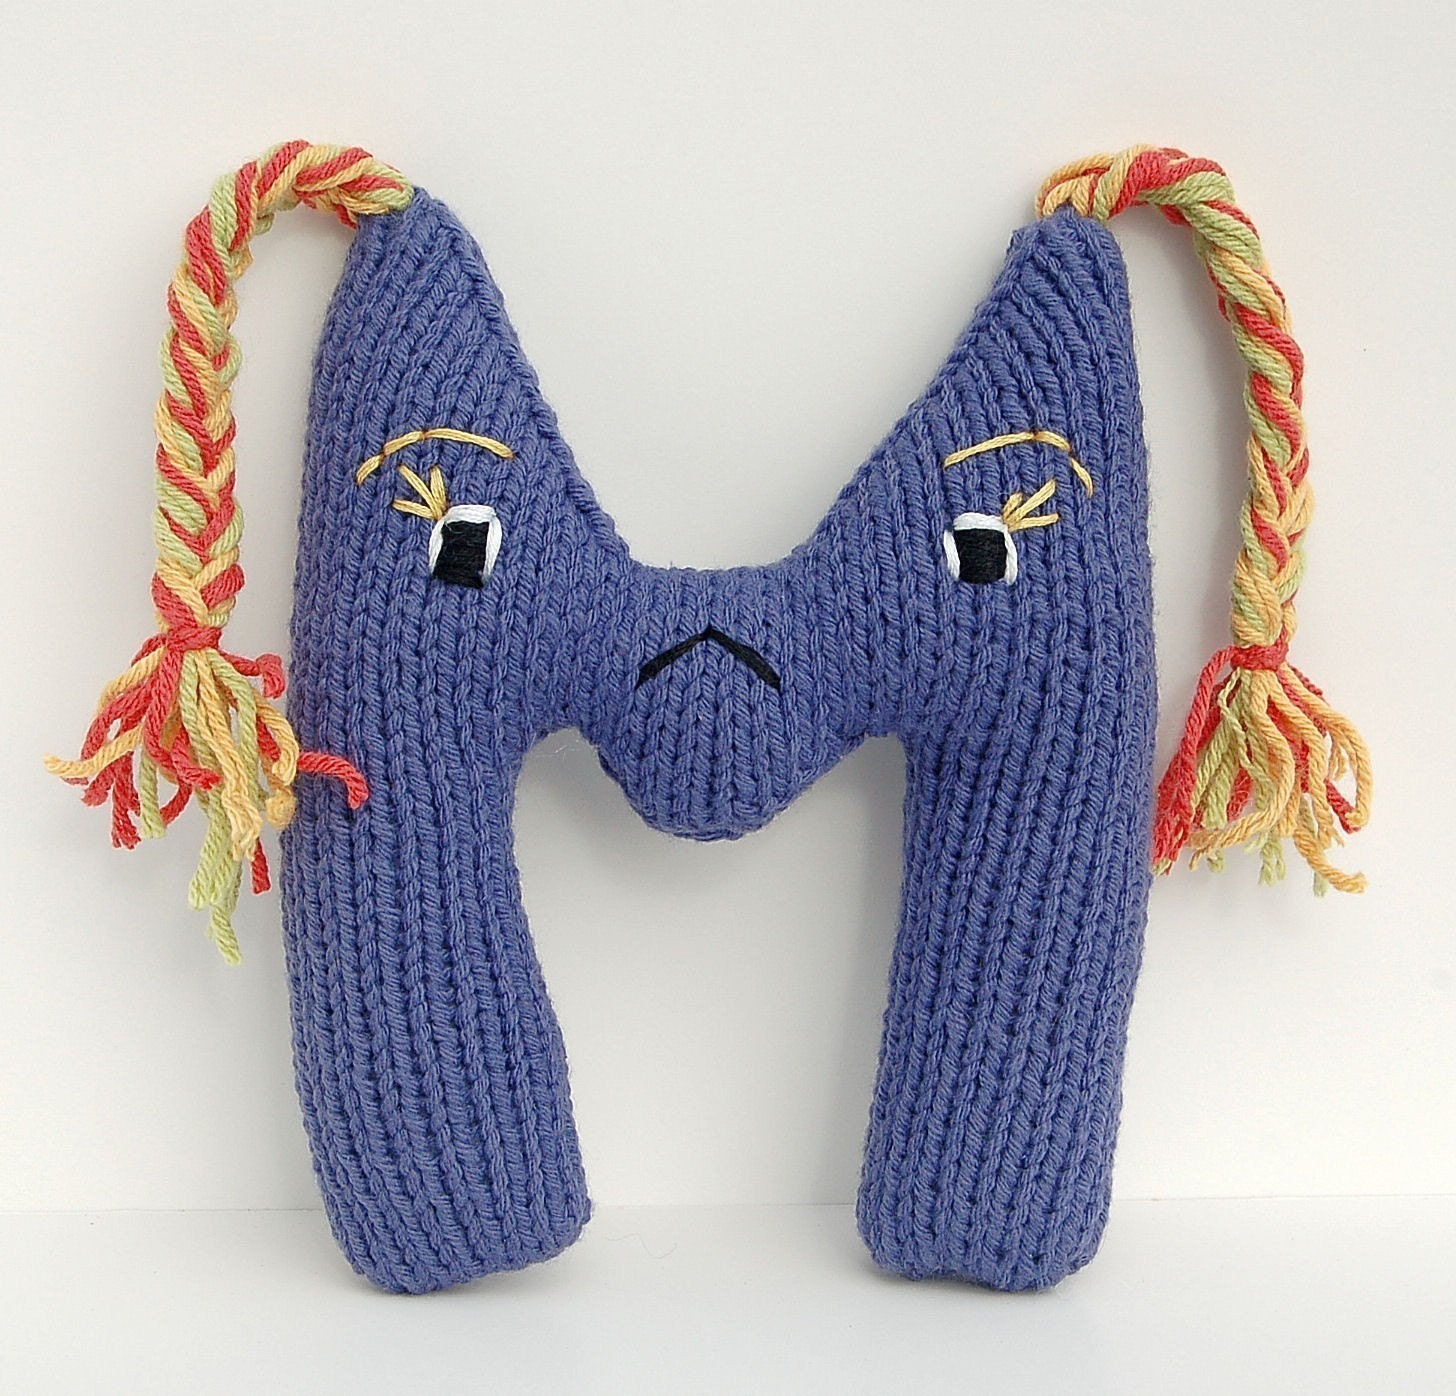 Letter M Alphabet Plush Toy Knitting PATTERN - Monica